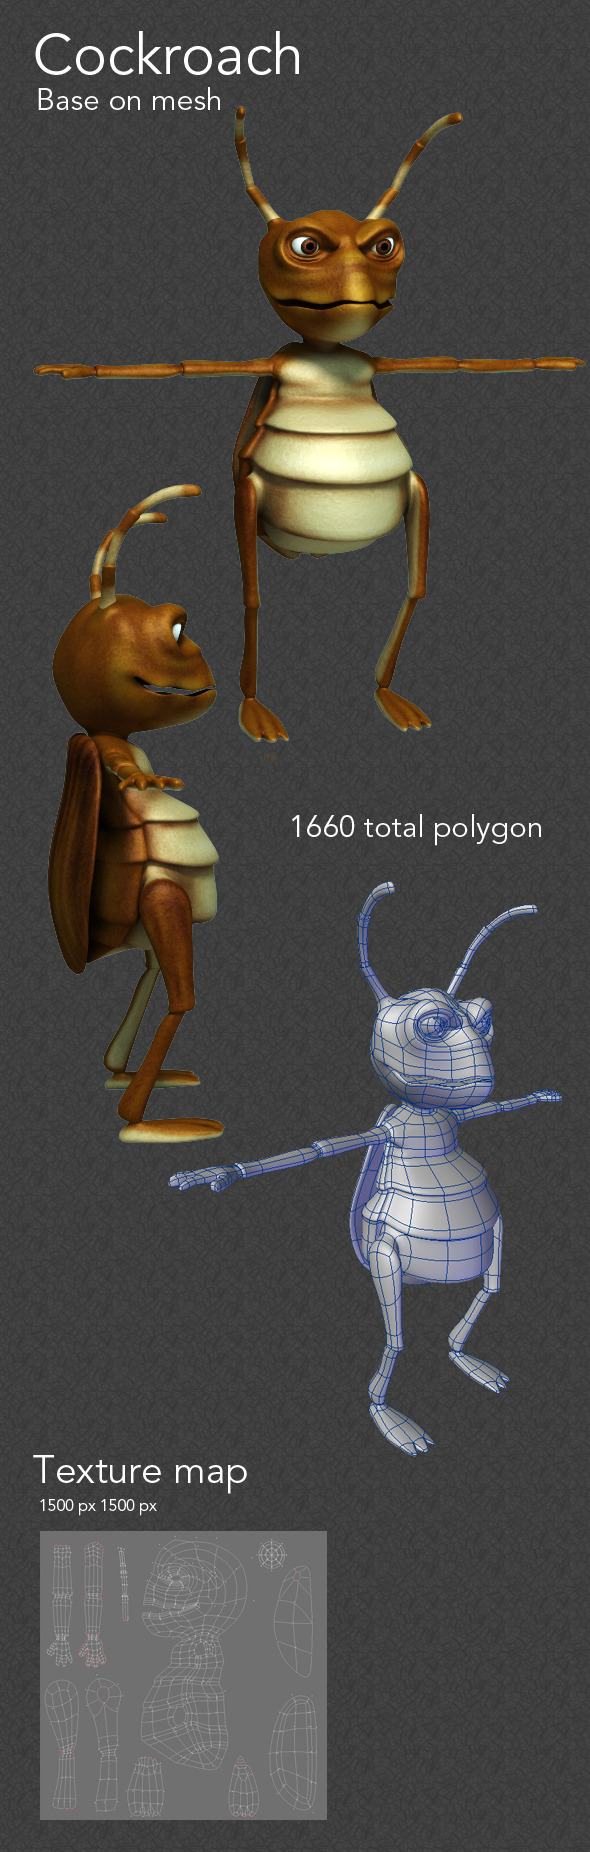 cockroach  - 3DOcean Item for Sale